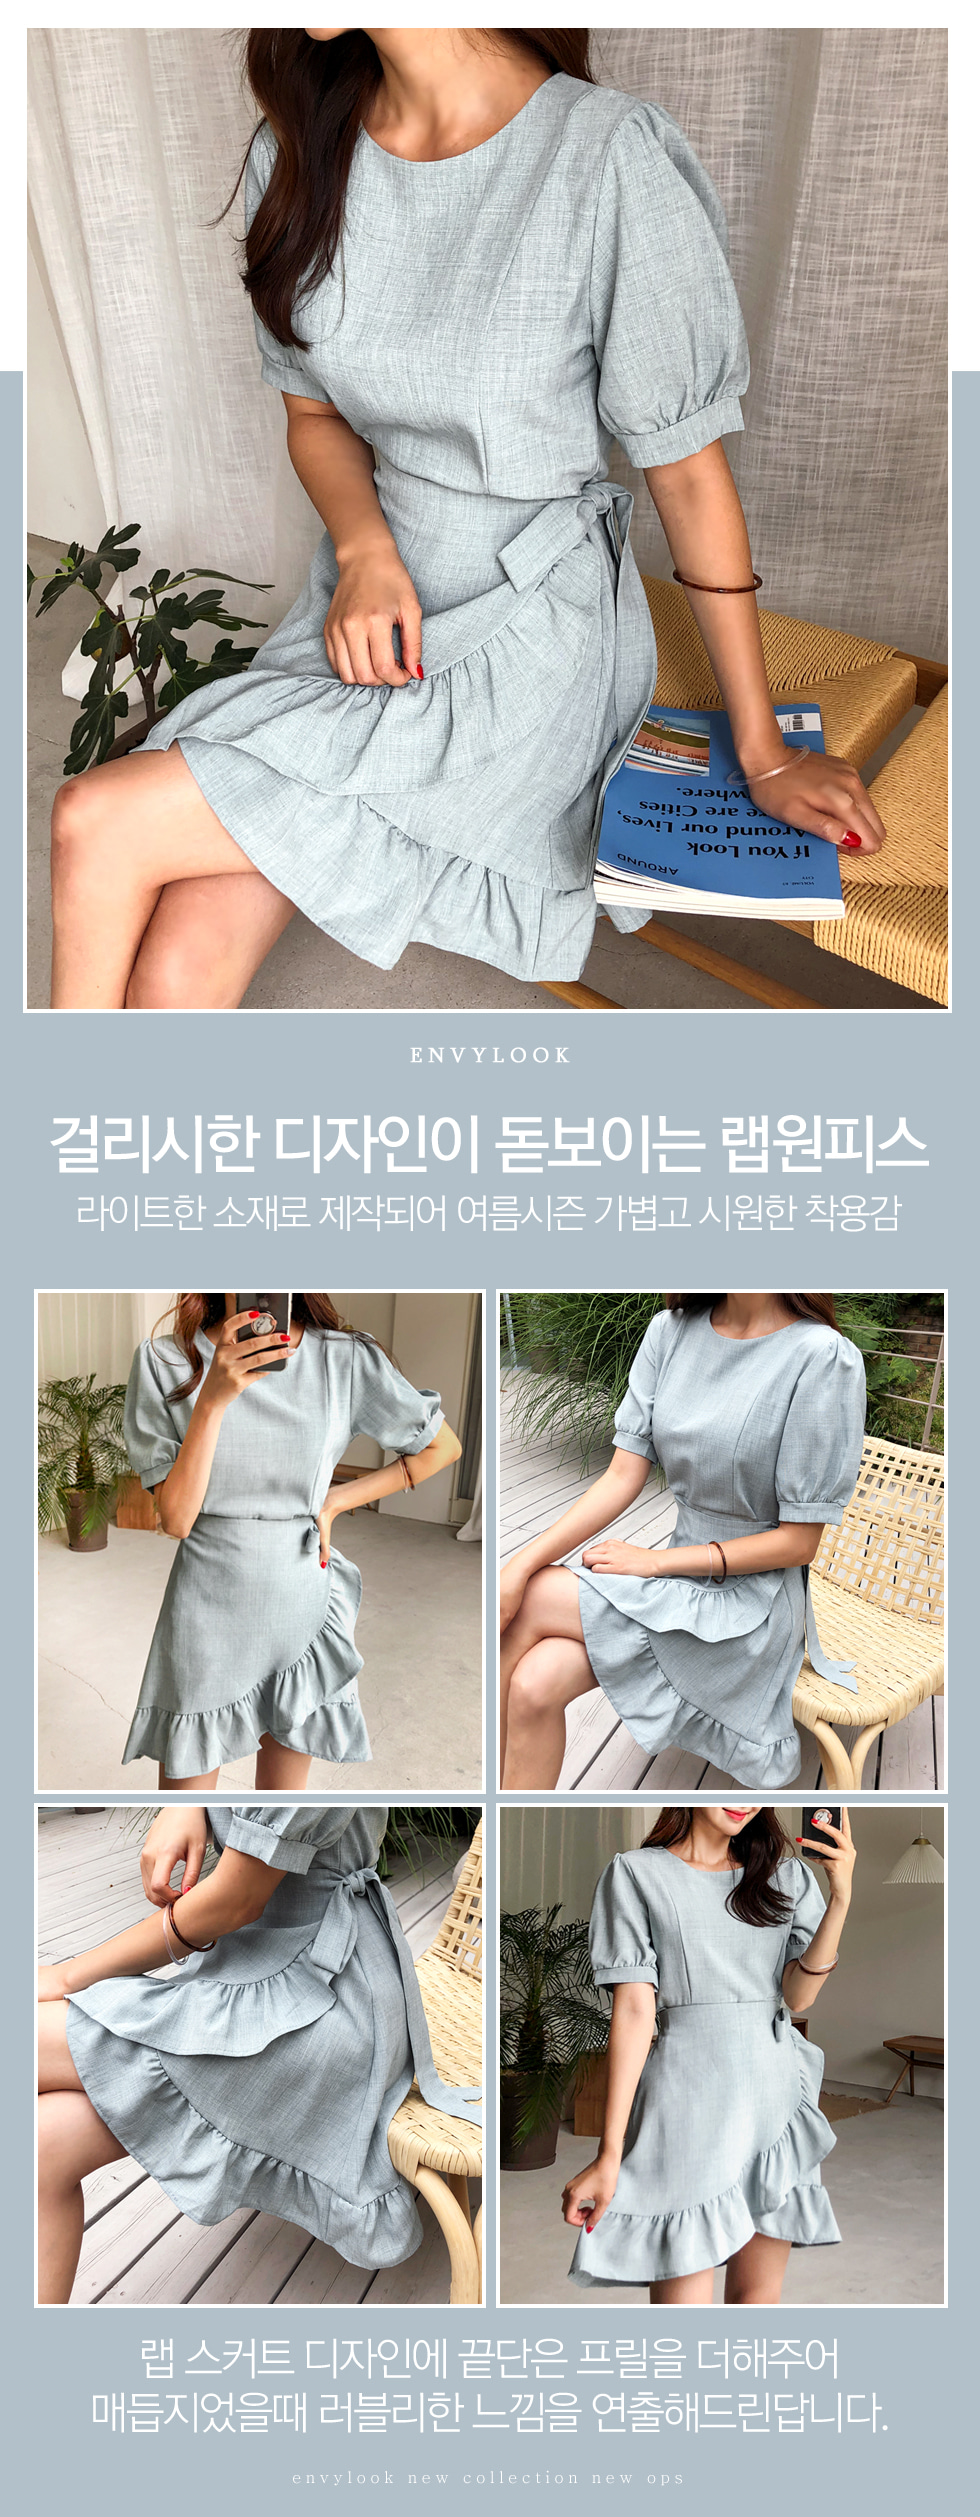 Cheongsun frilly wrap dress